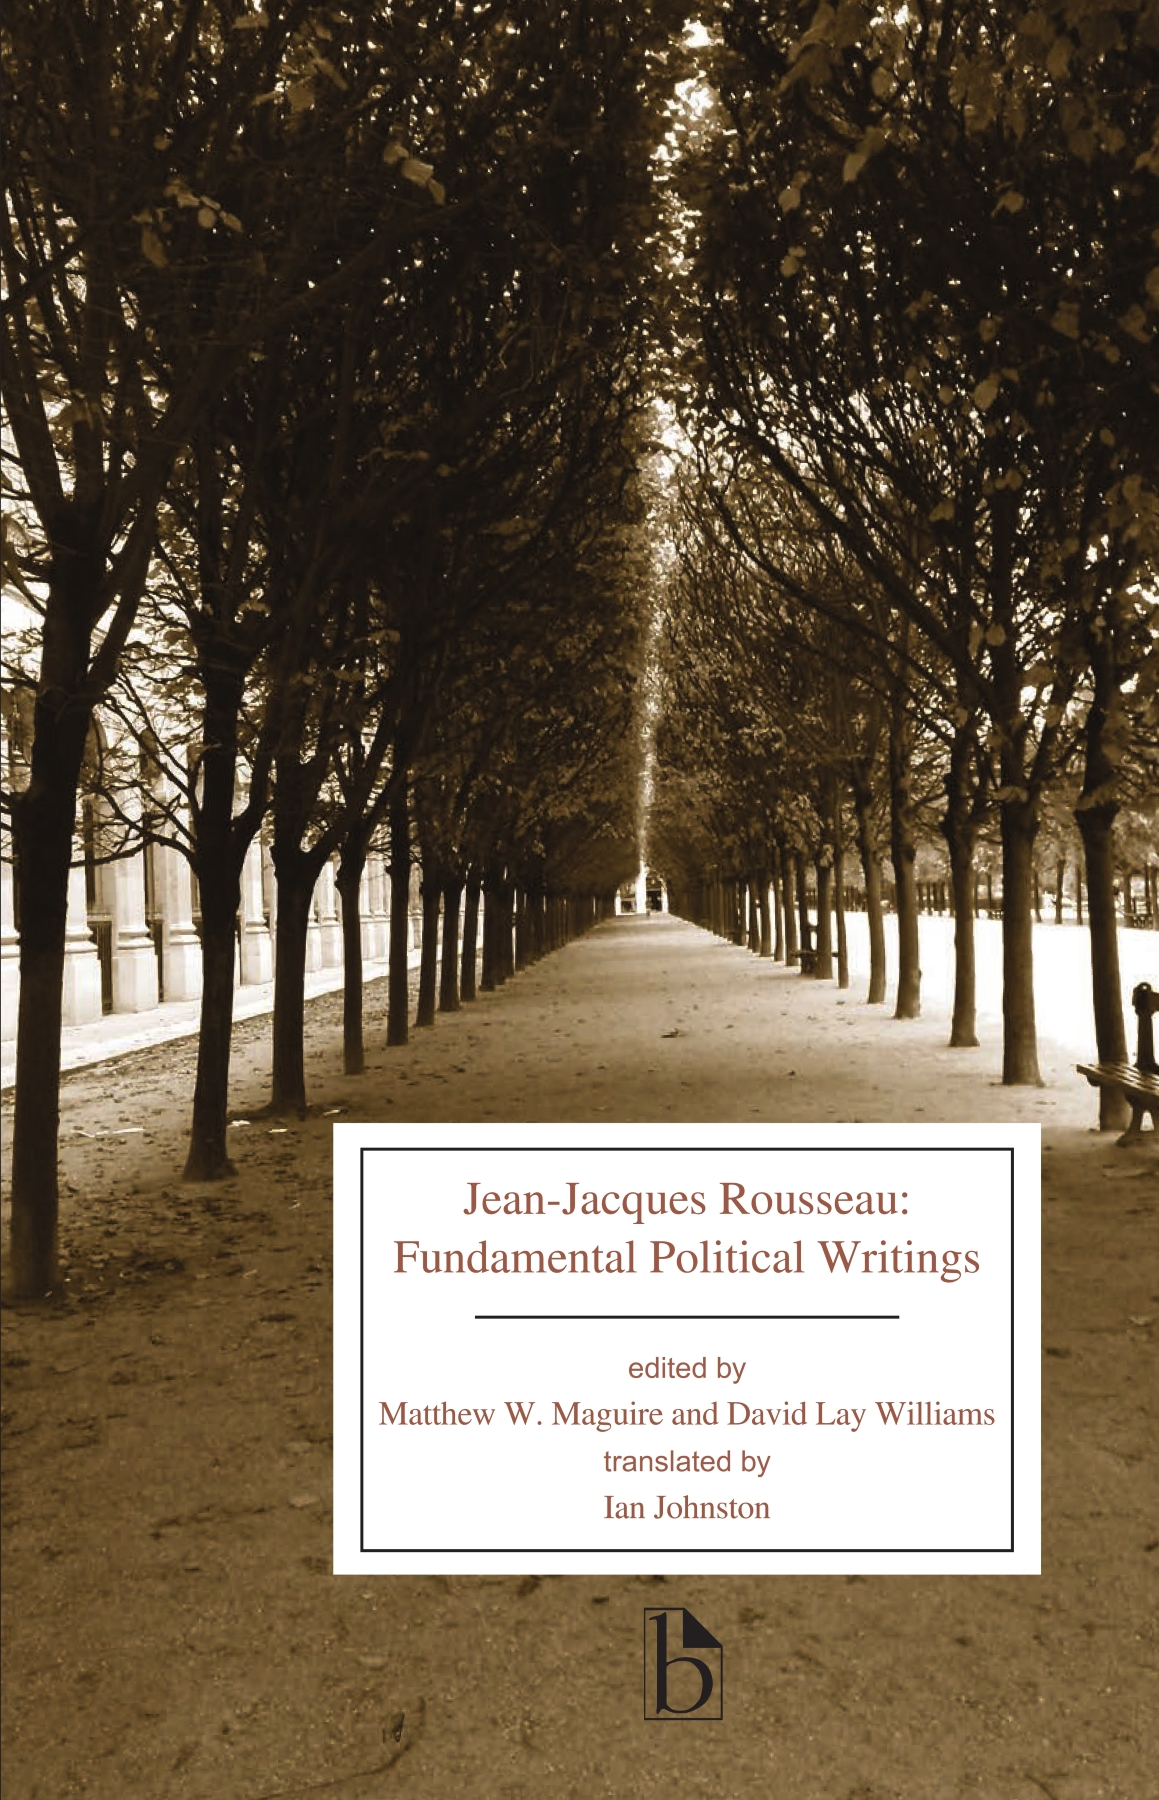 Jean-Jacques Rousseau: Fundamental Political Writings